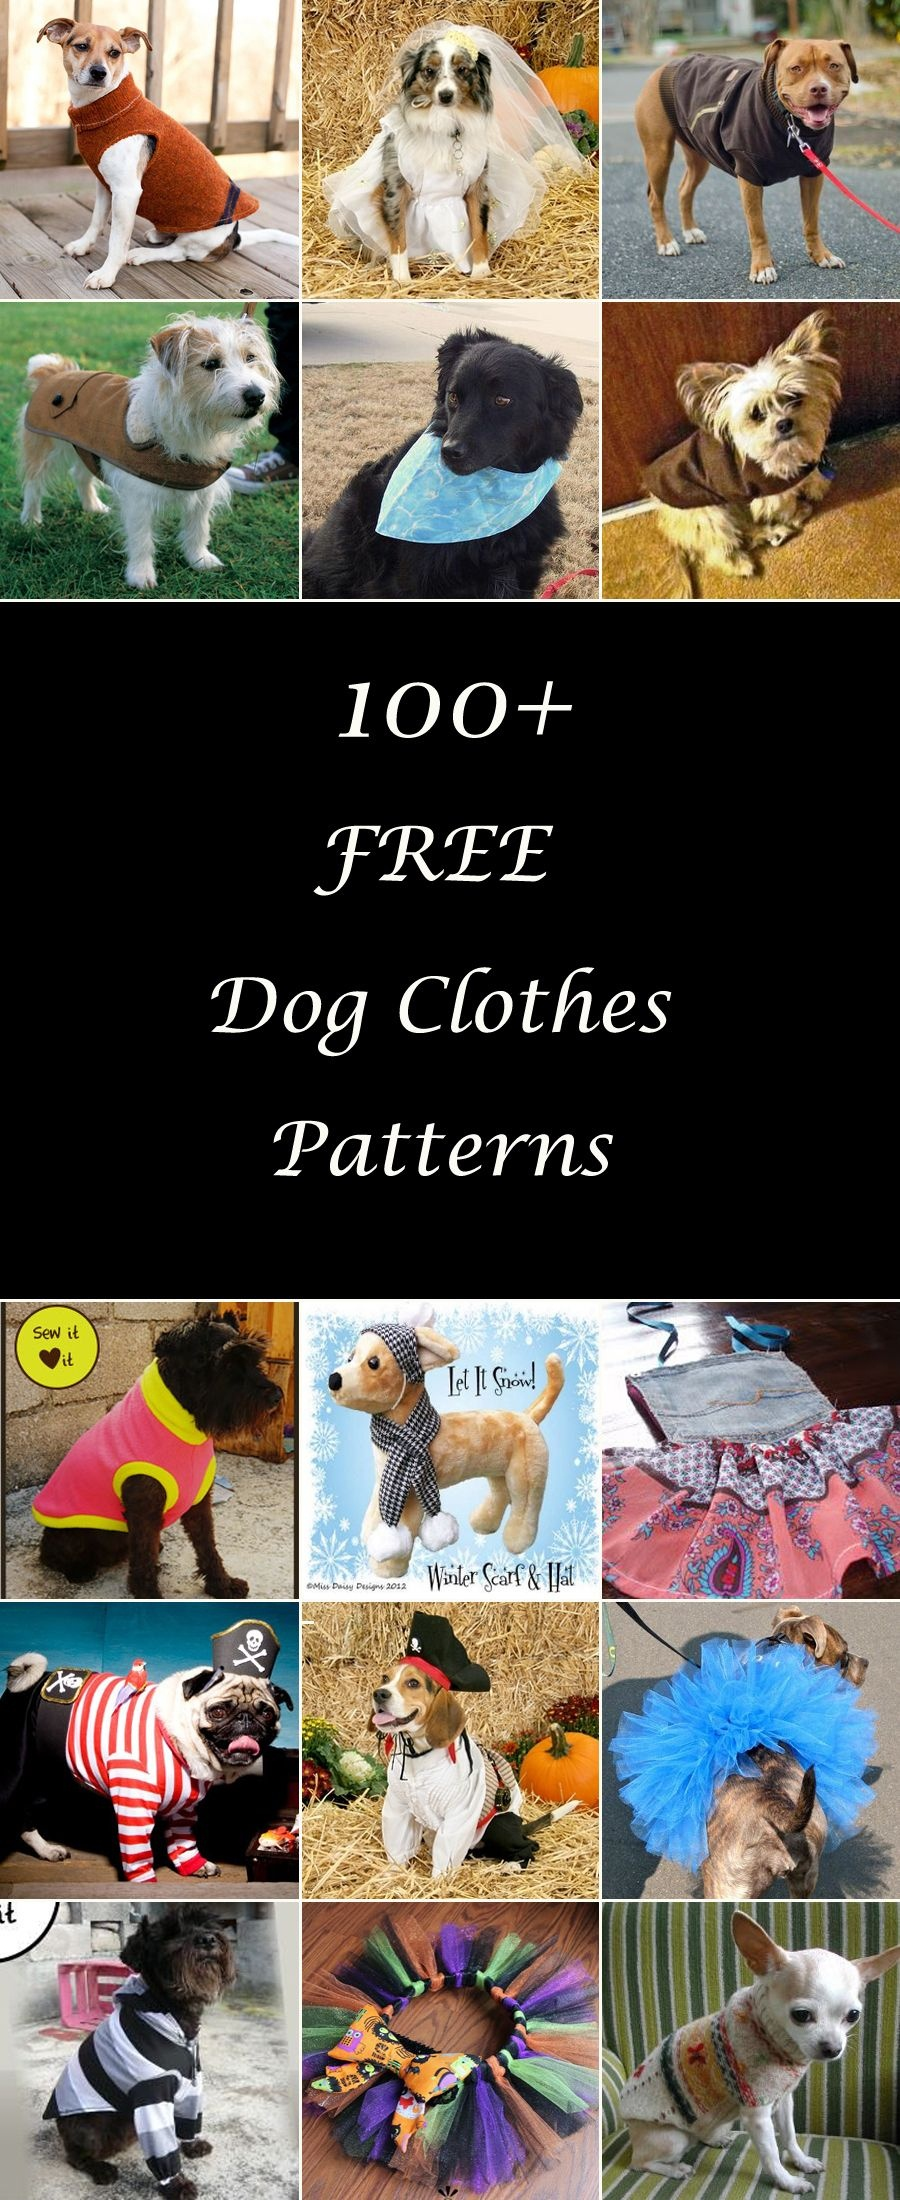 100+ Free Dog Clothes Patterns | Adorable Animals | Dog Clothes - Free Printable Sewing Patterns For Dog Clothes